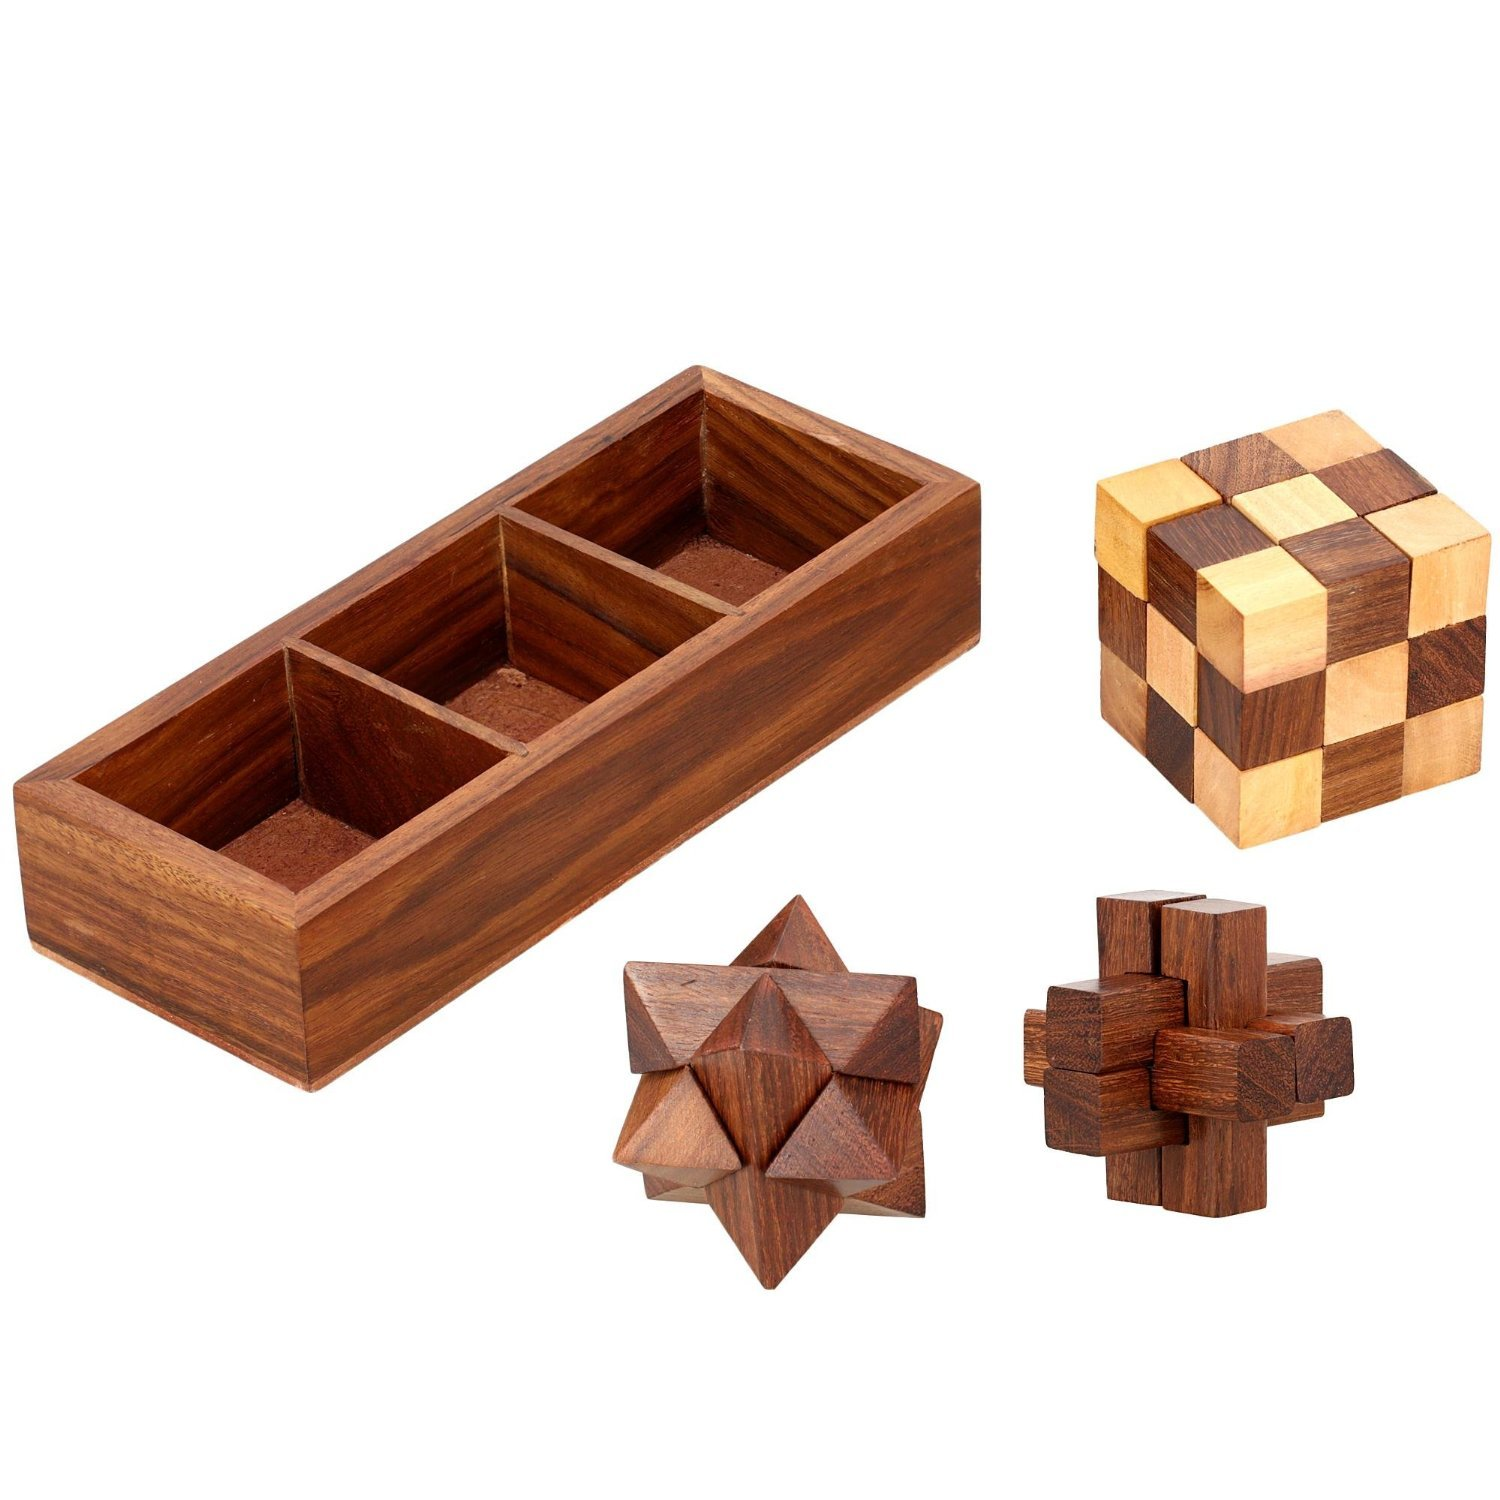 Indian Glance 3D Puzzles for Adults | Kids | Teens | Boys | Girls | Fun- Includes Wood Interlocking Blocks, Diagonal Burr, and Snake Cube in Storage Box - Wooden Puzzle Games Set